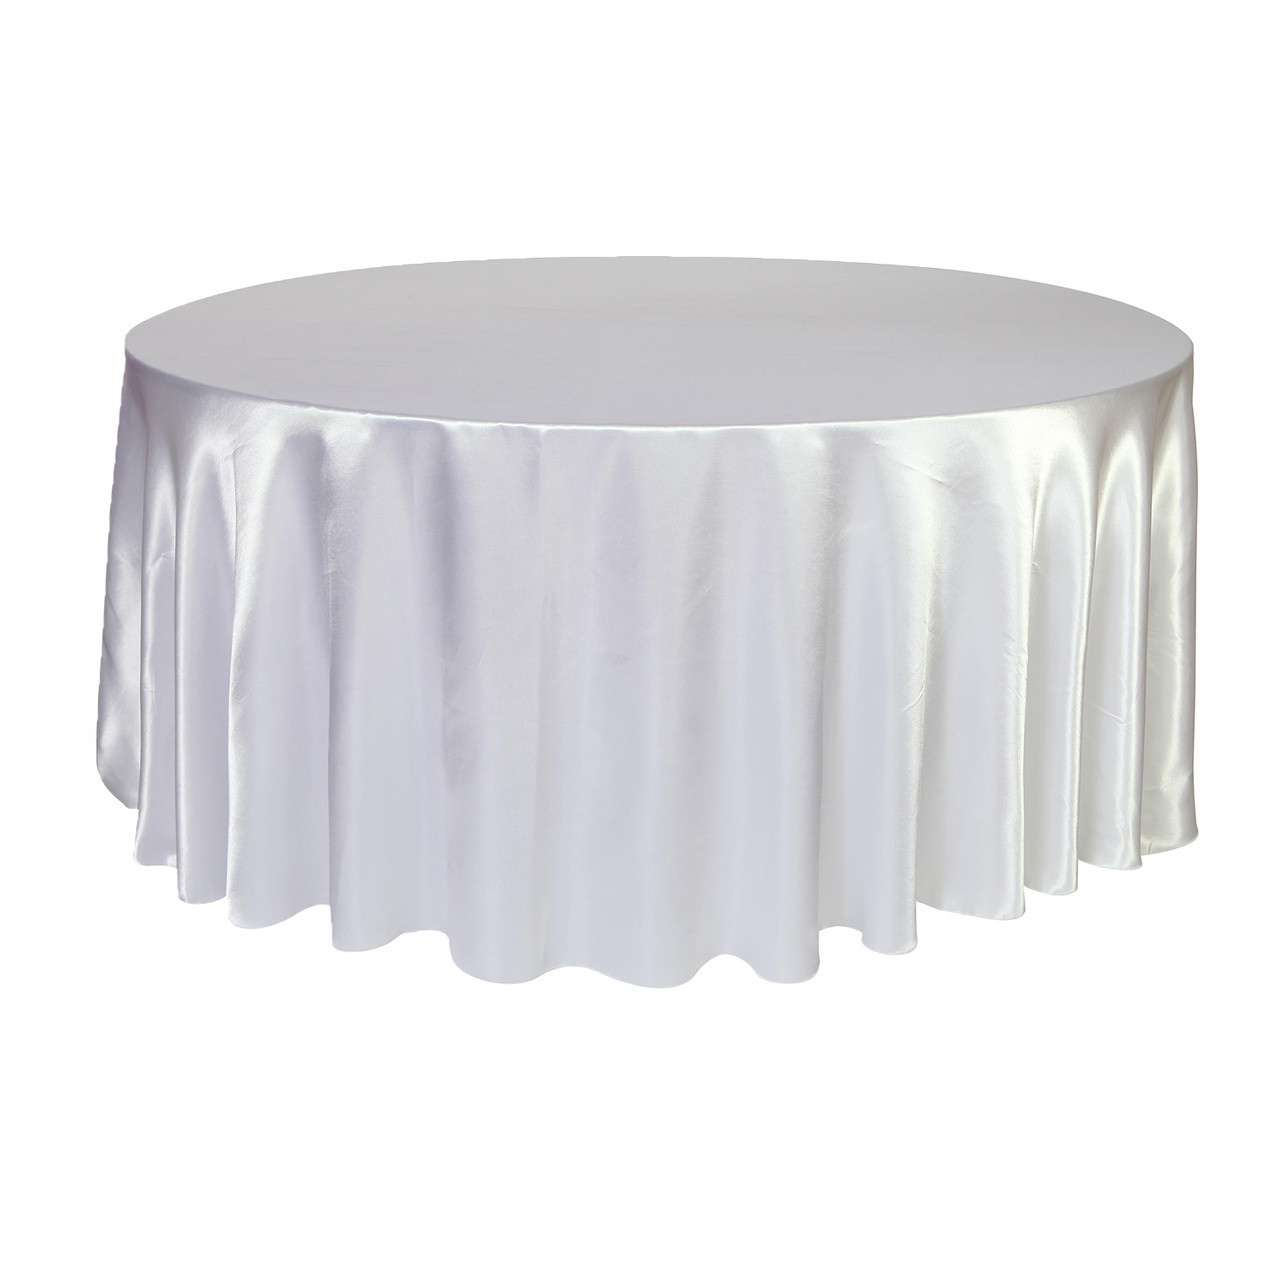 Miraculous 132 Inch Round Satin Tablecloth White Beutiful Home Inspiration Ommitmahrainfo